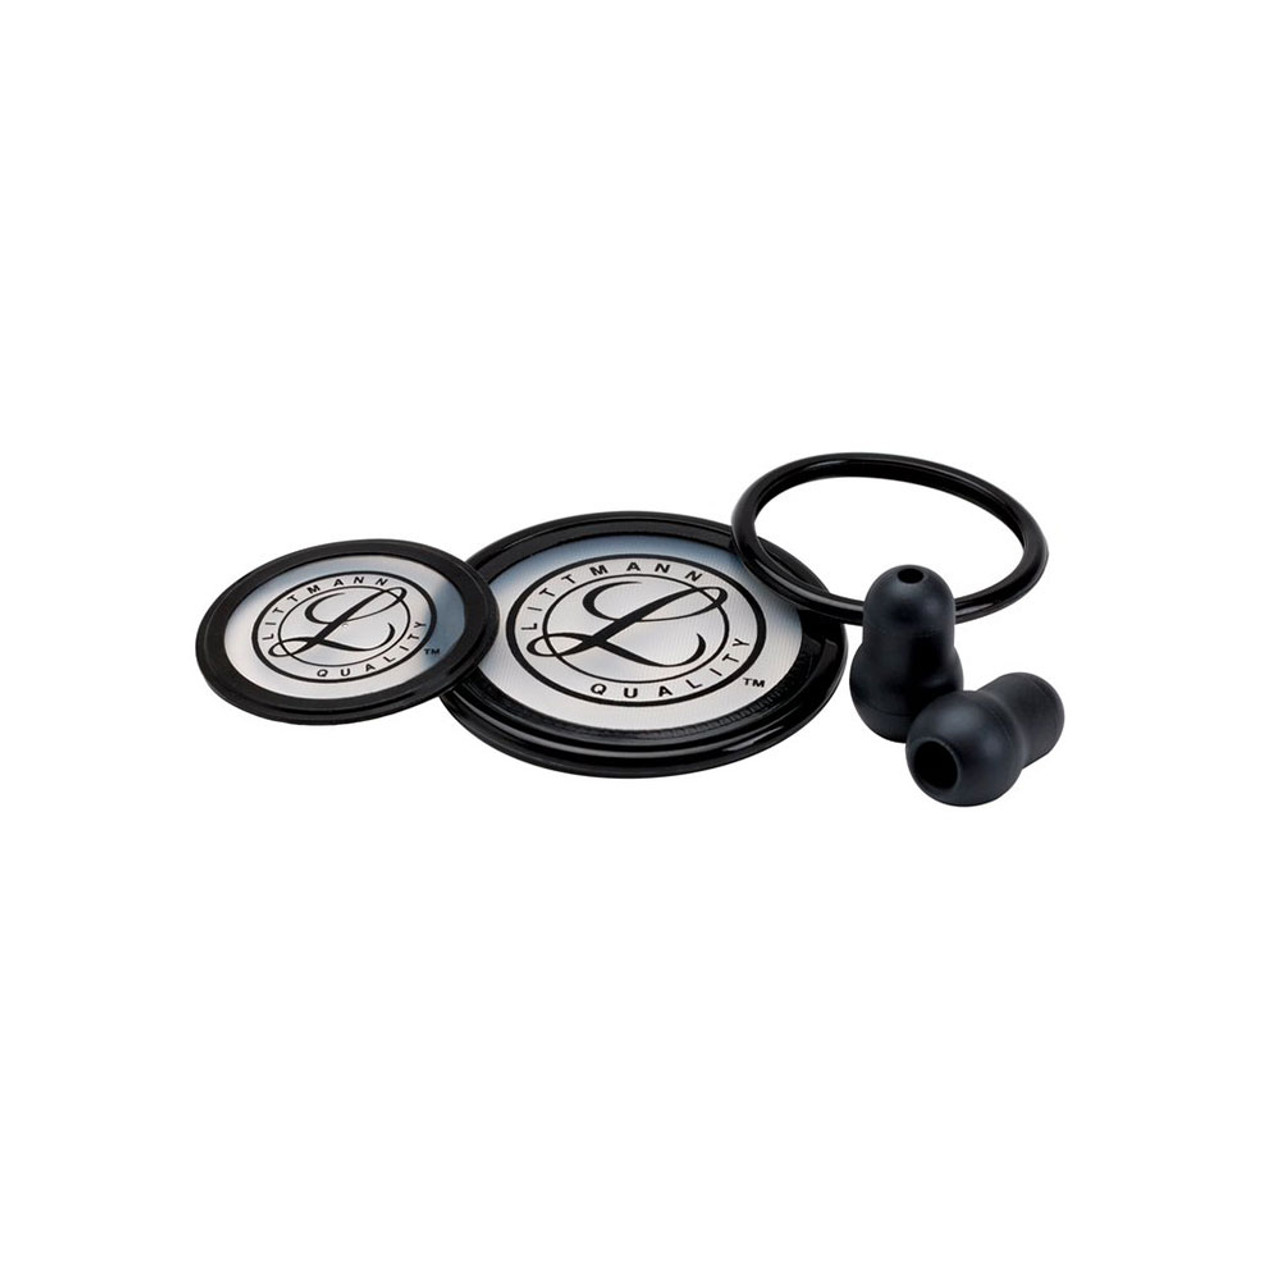 Littmann Stethoscope Spare Parts Kit, Cardiology III, Black, 40003